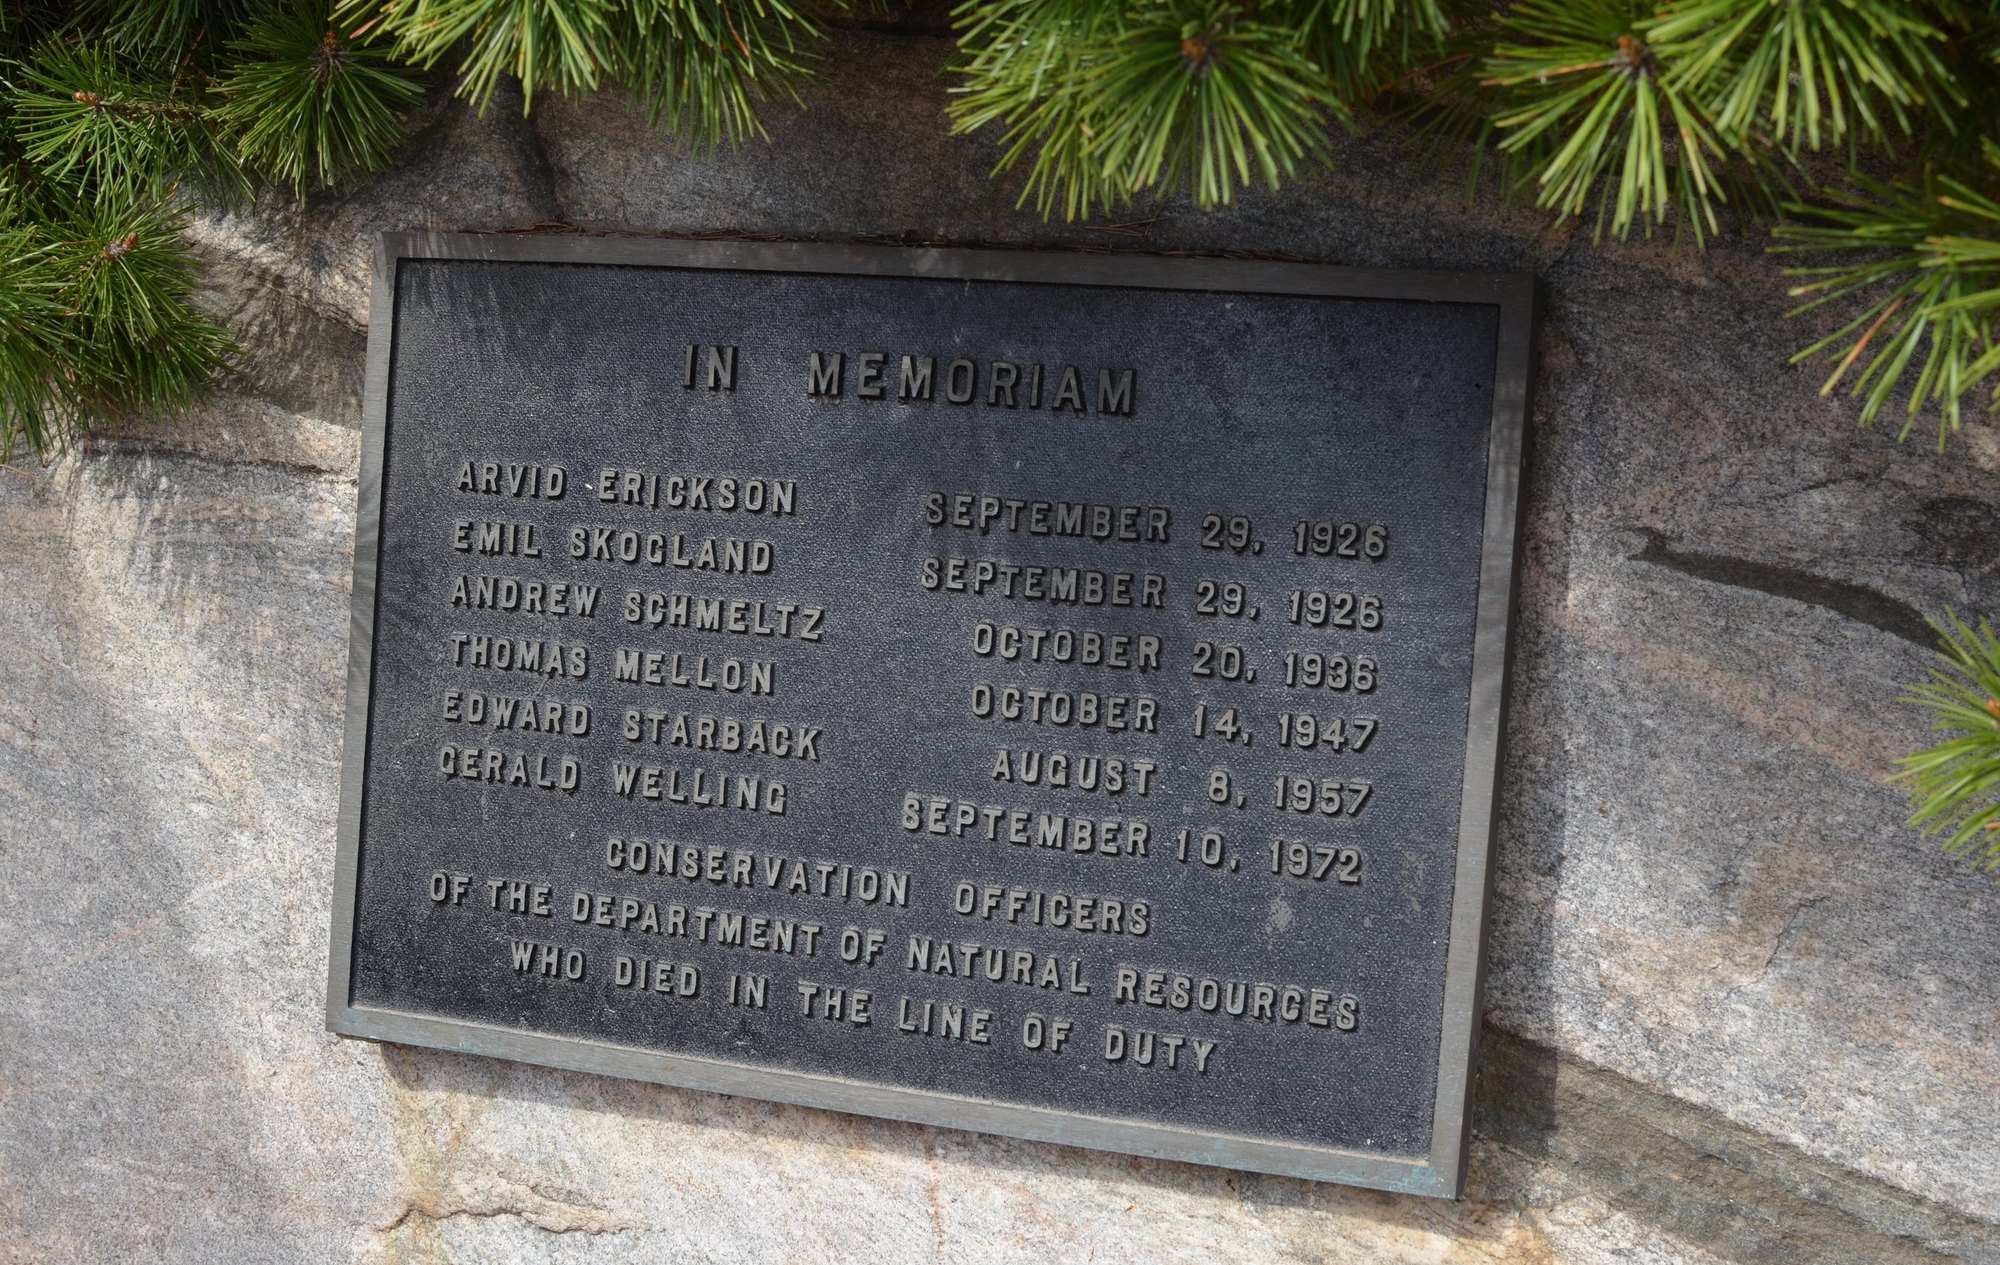 A memorial plaque outside the Michigan DNR Customer Service Center in Marquette remembers six fallen conservation officers.